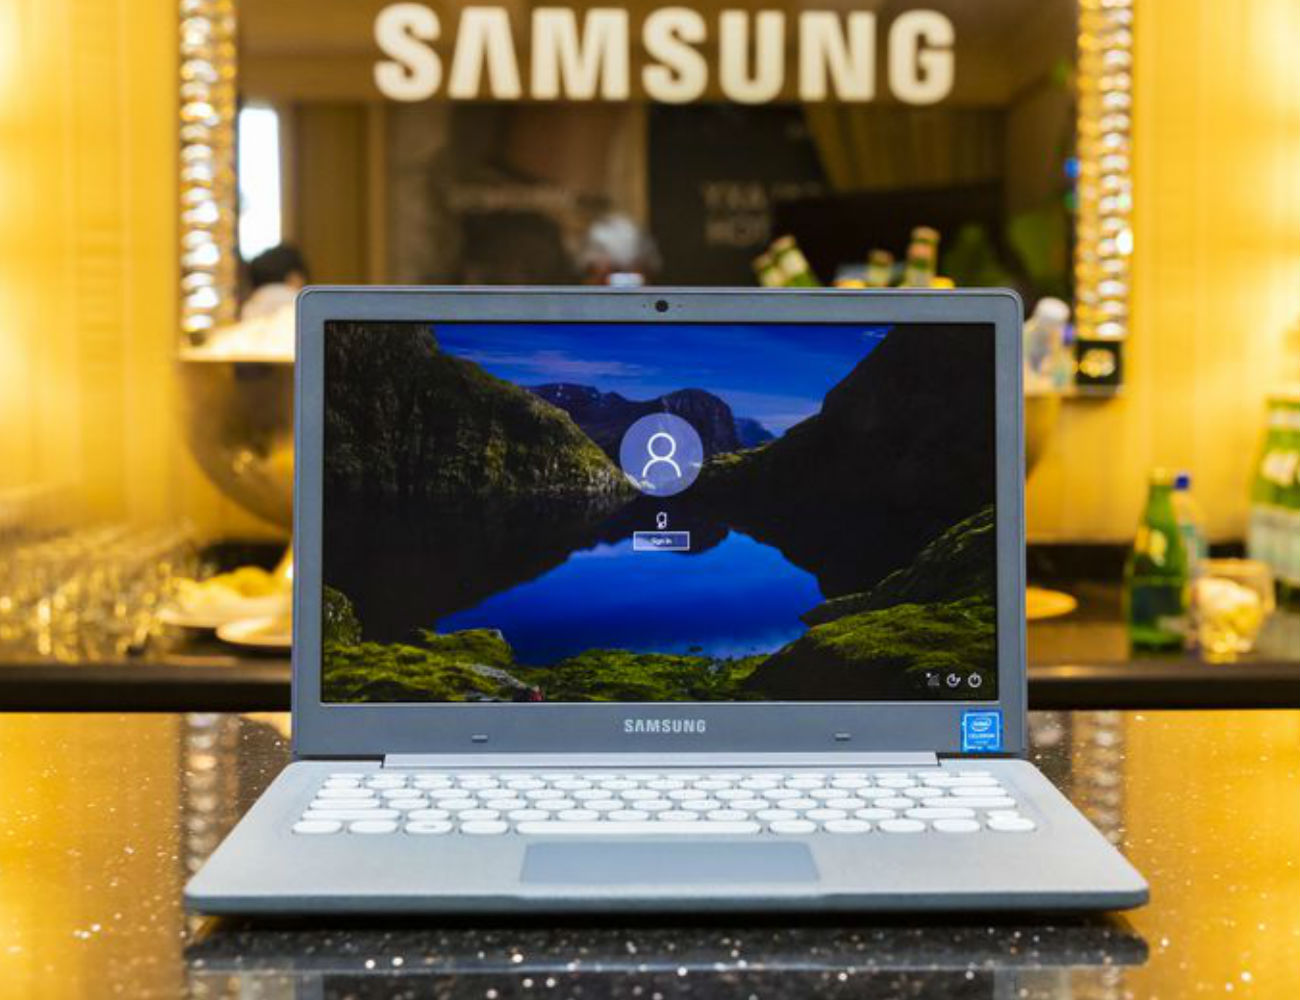 Samsung Flash Ultra Slim Notebook